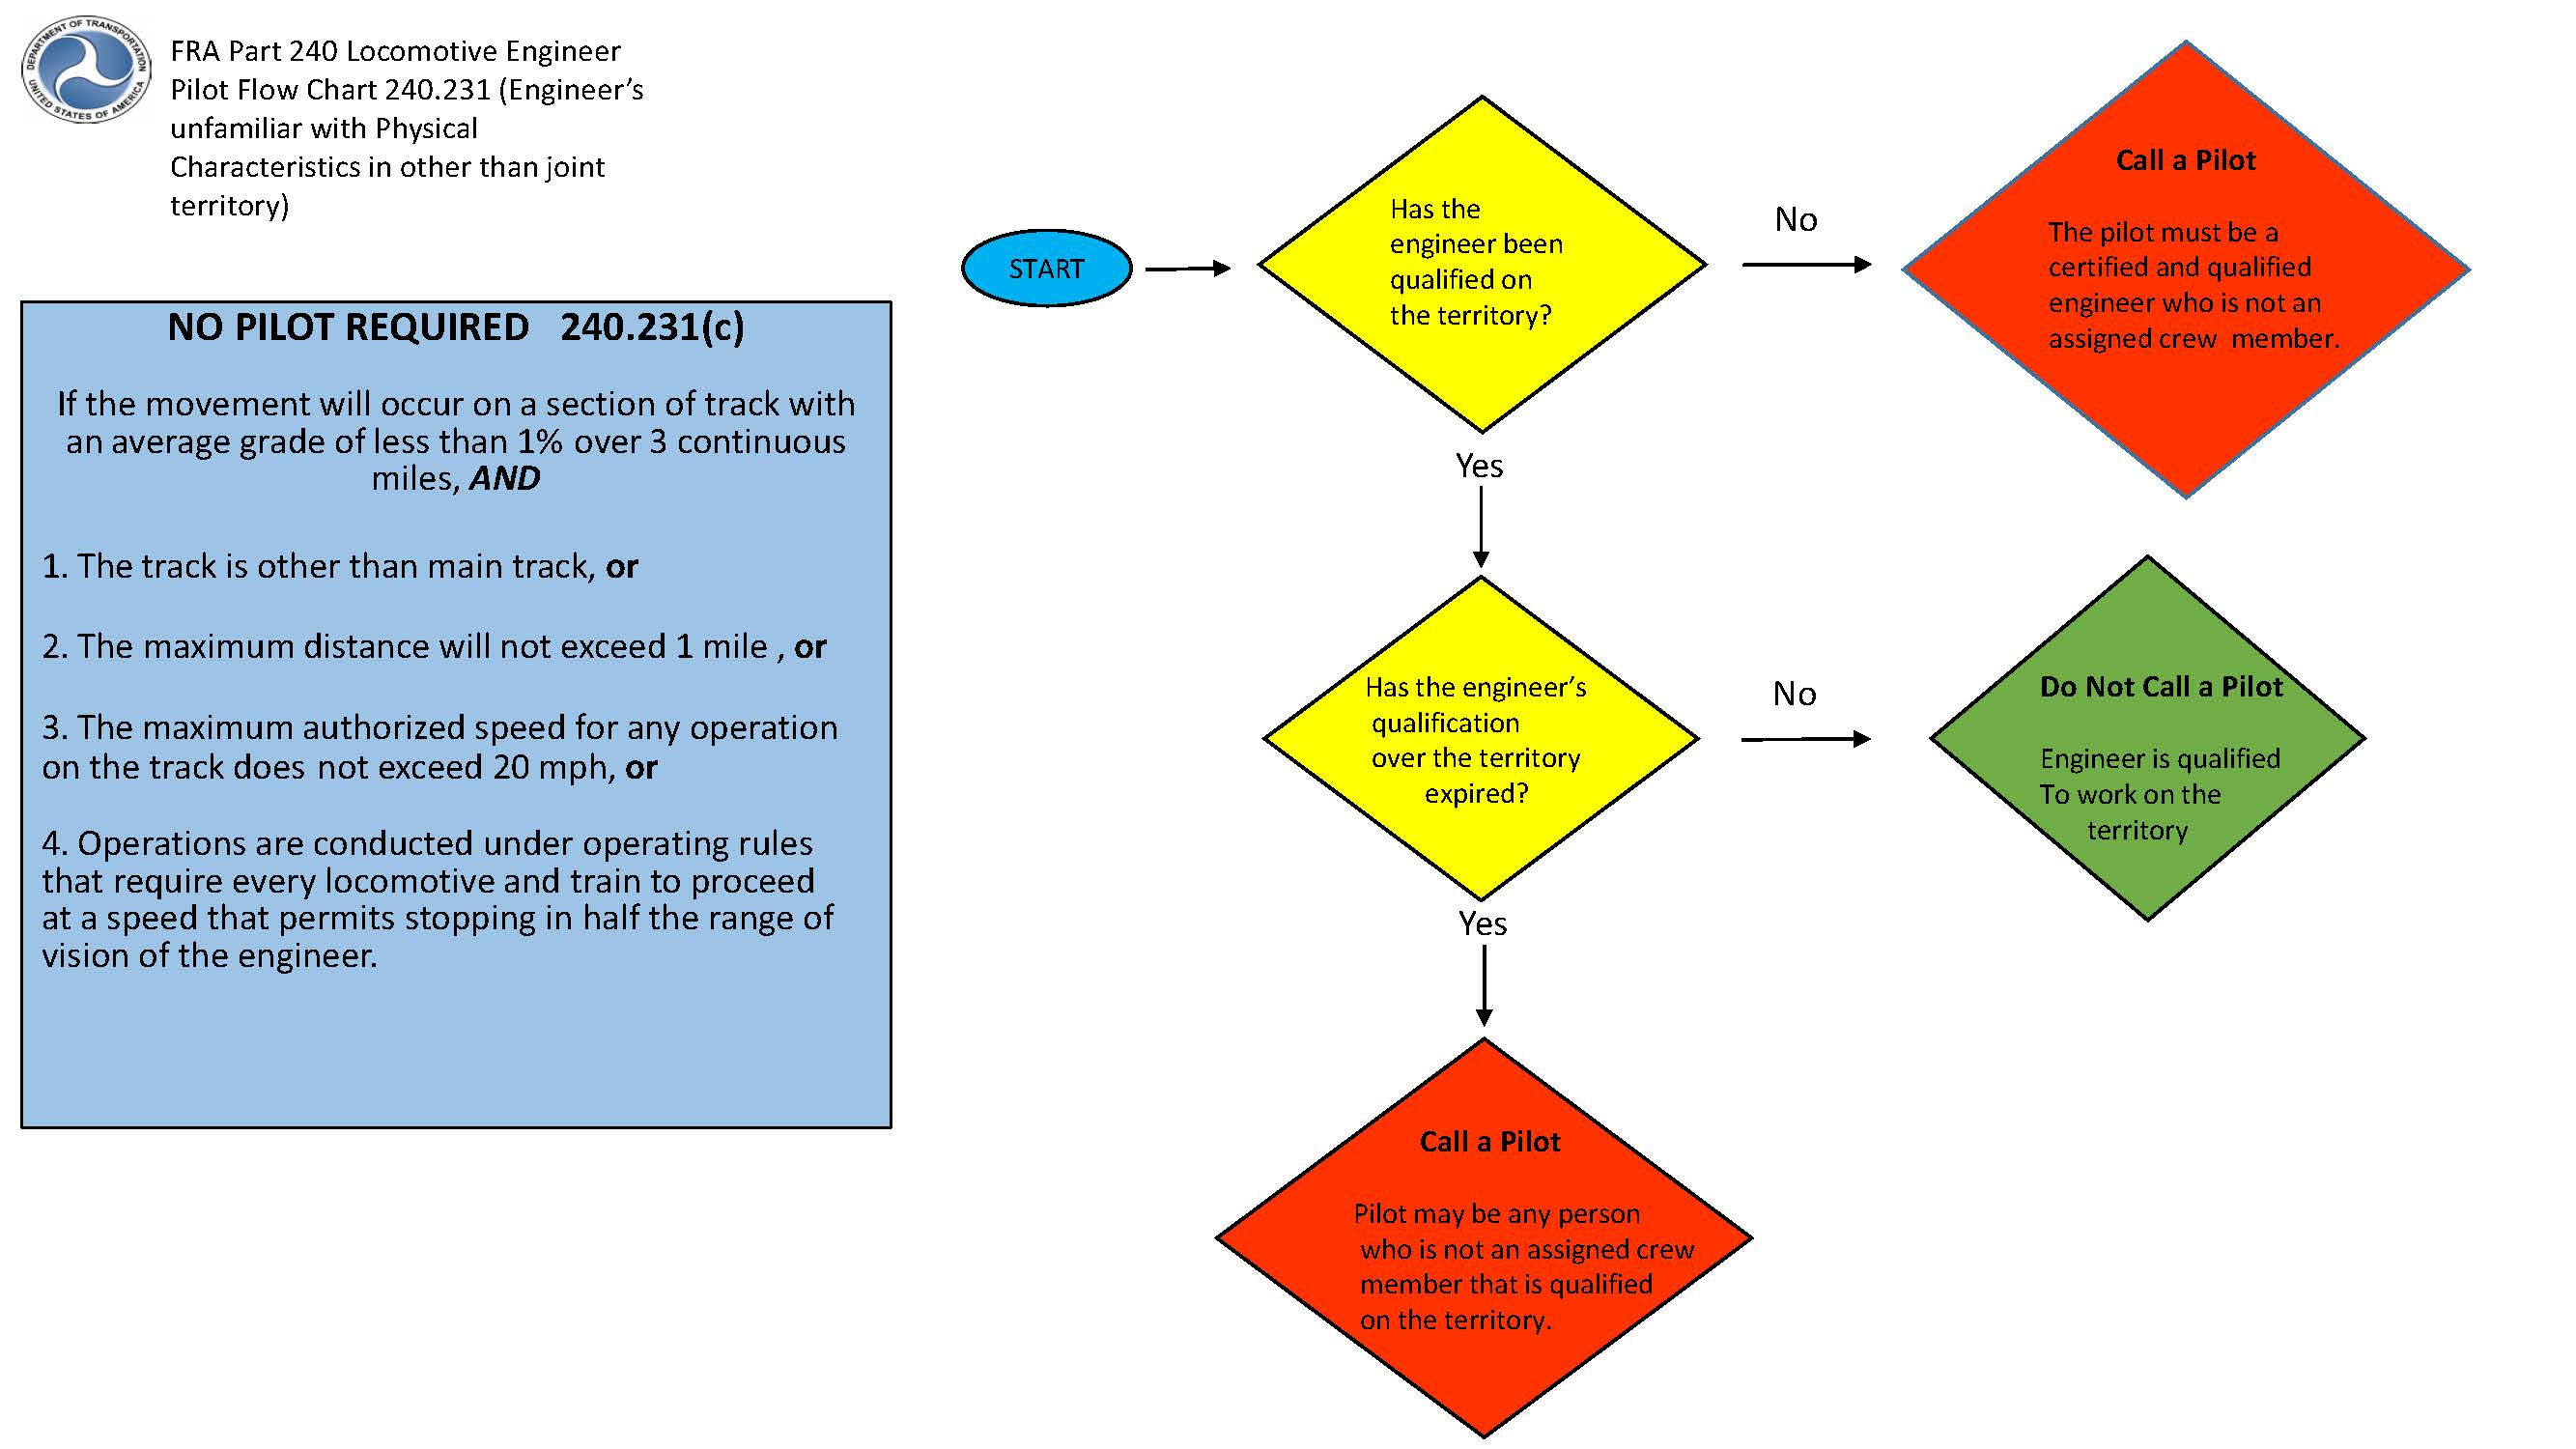 Fmla flow chart choice image free any chart examples fra part 240 engineer pilot flow chart nvjuhfo choice image nvjuhfo Gallery